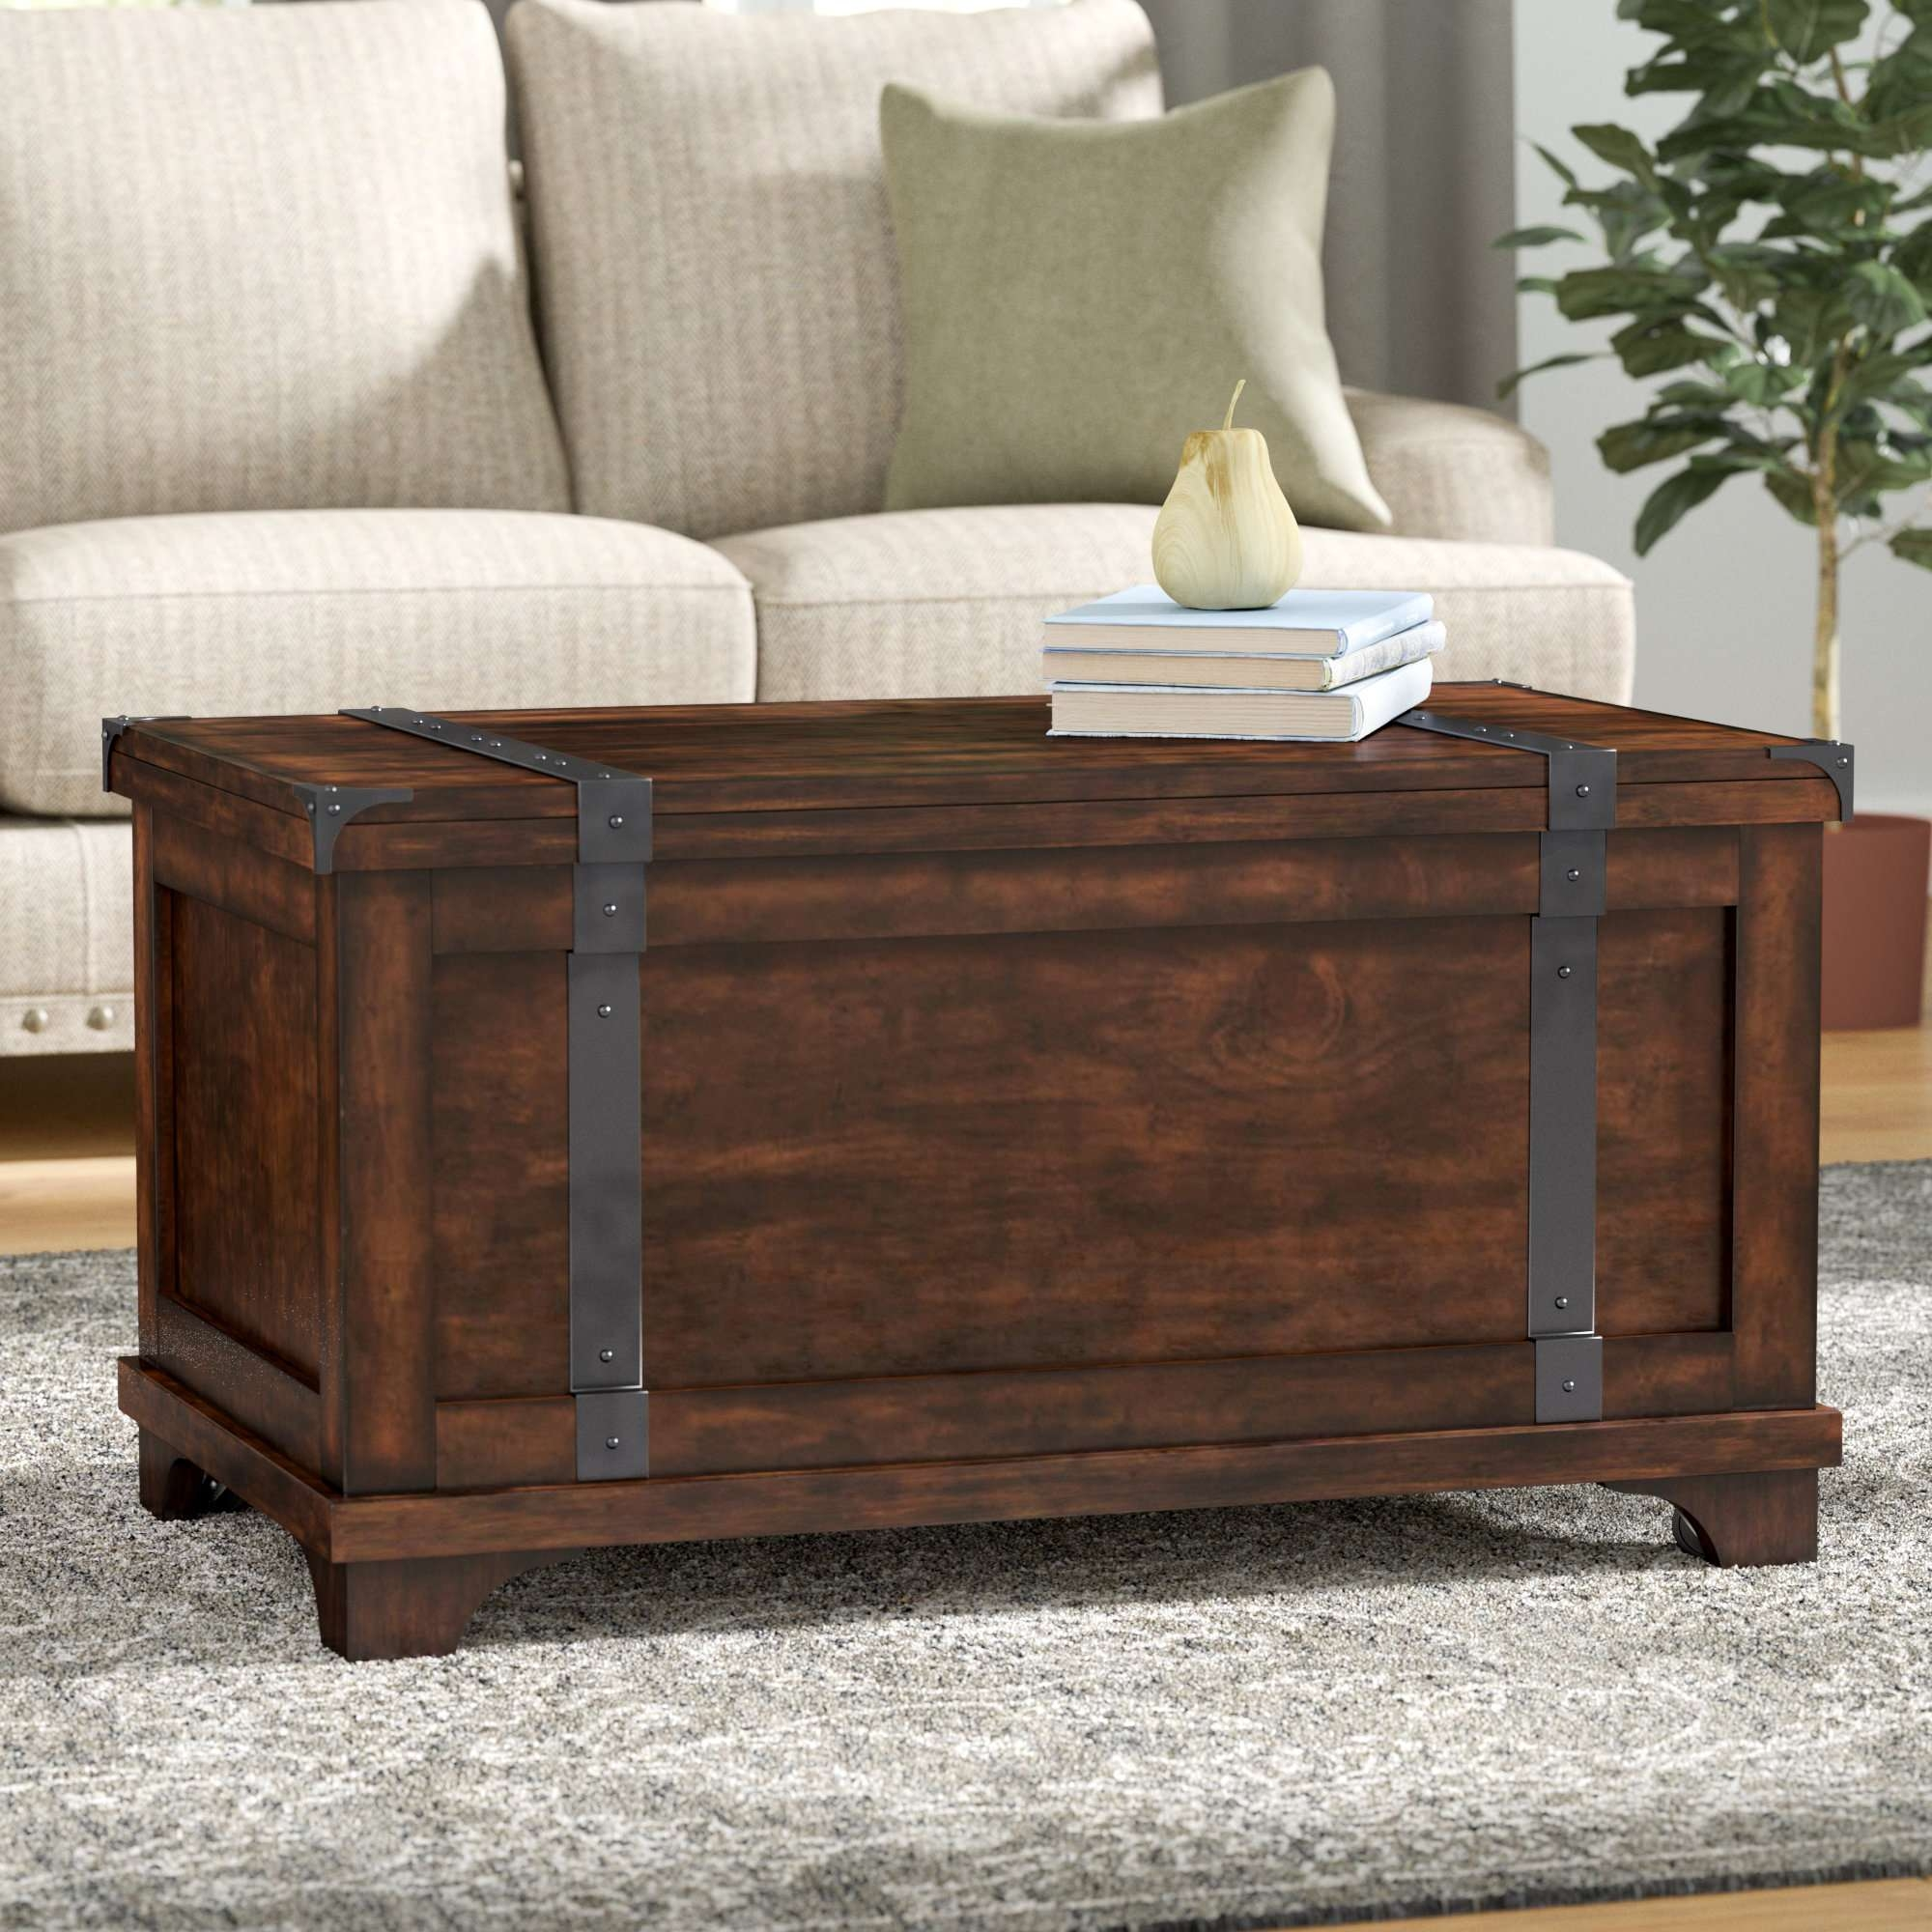 Famous Storage Trunk Coffee Tables Inside Charlton Home Bischoptree Storage Trunk Coffee Table & Reviews (View 6 of 20)